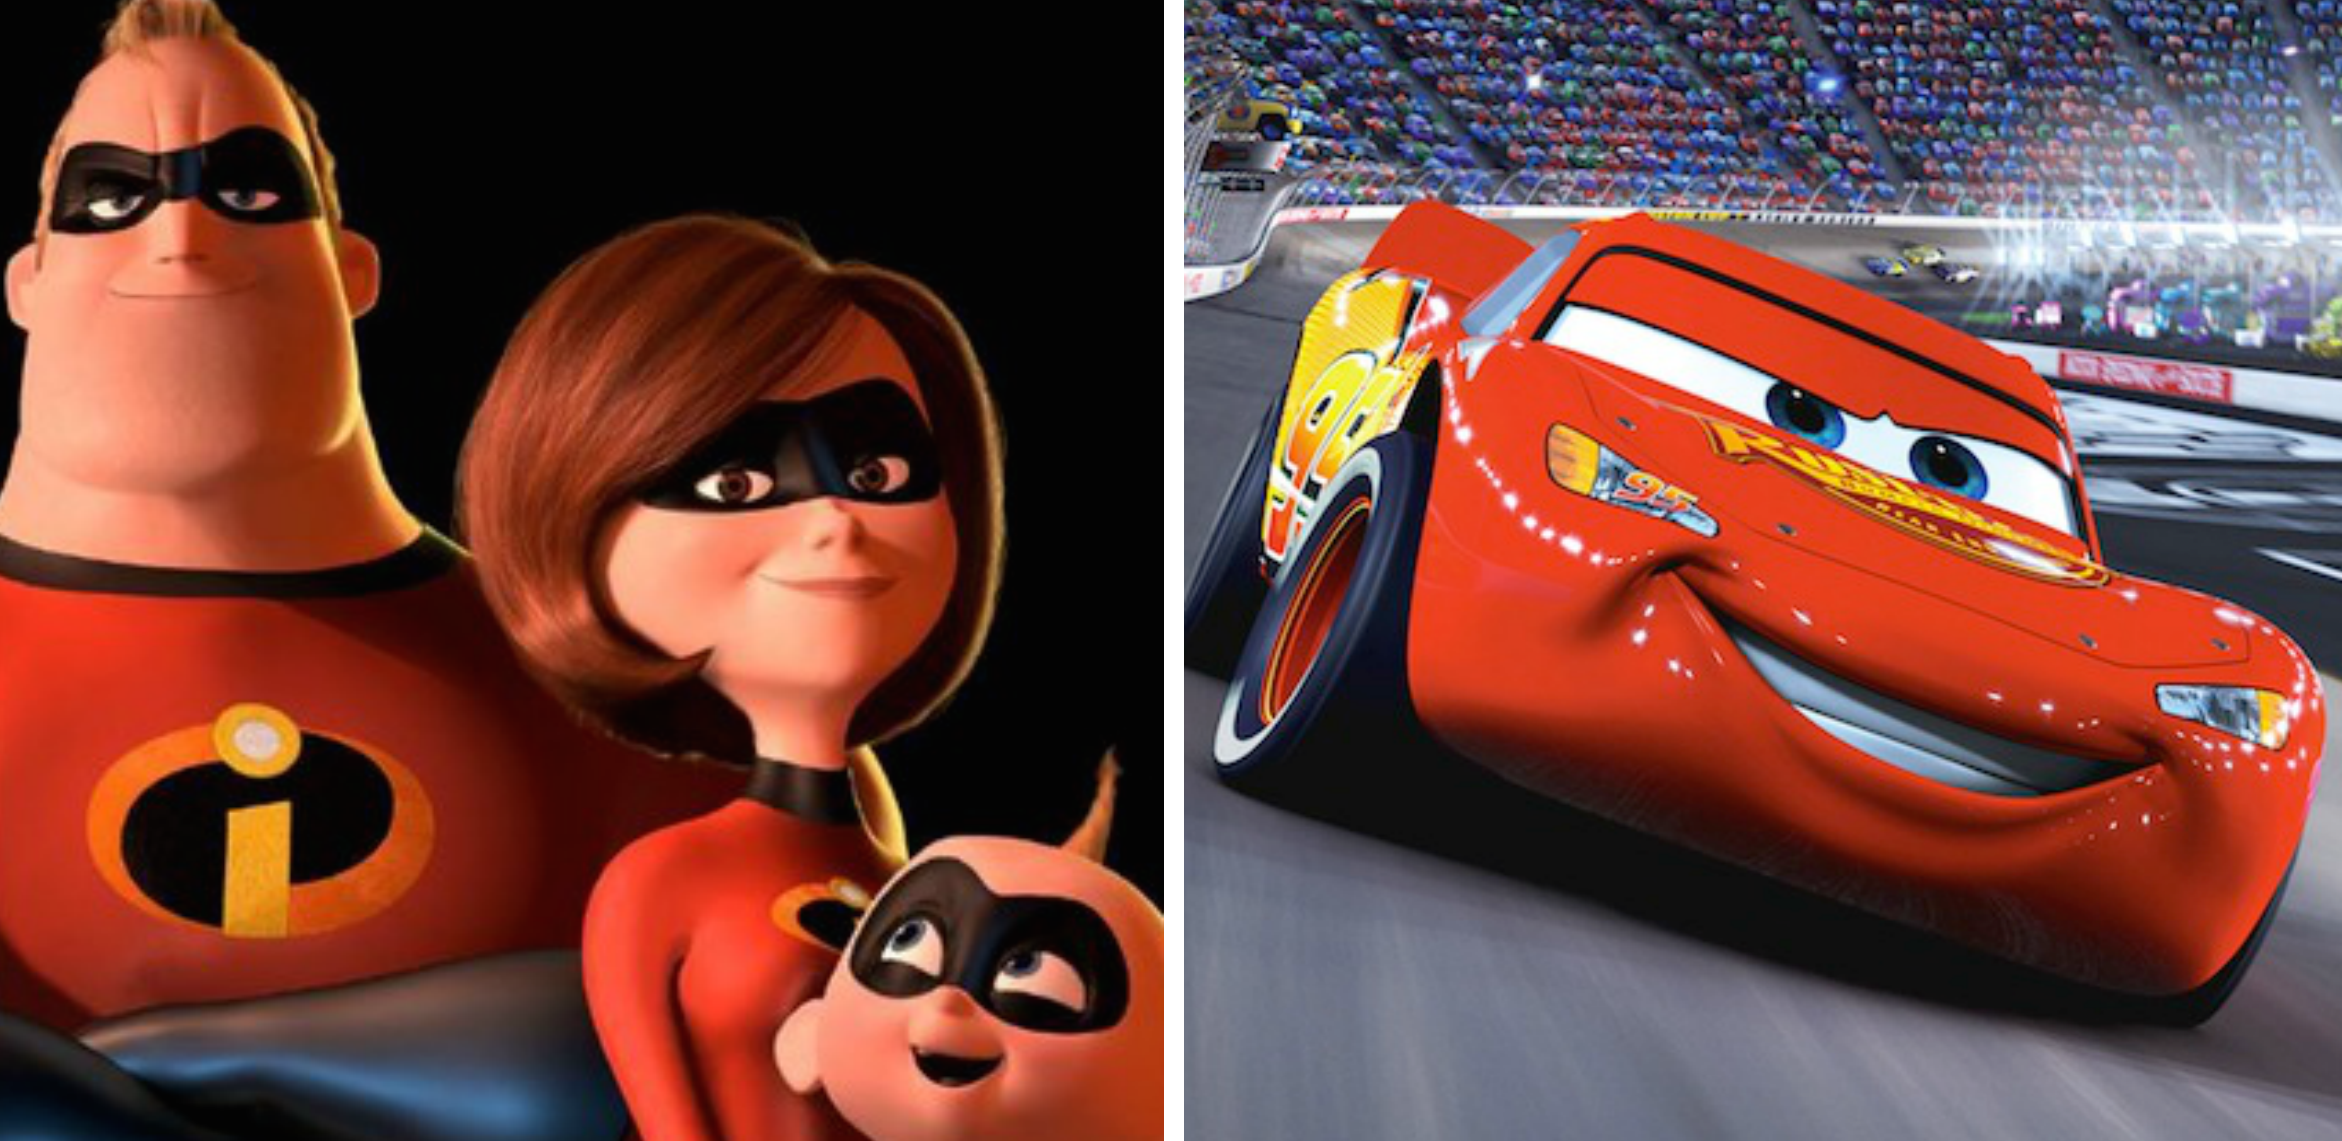 Amazing Wallpaper Movie The Cars - Cars-3-HD-Wallpaper  HD_845651.png